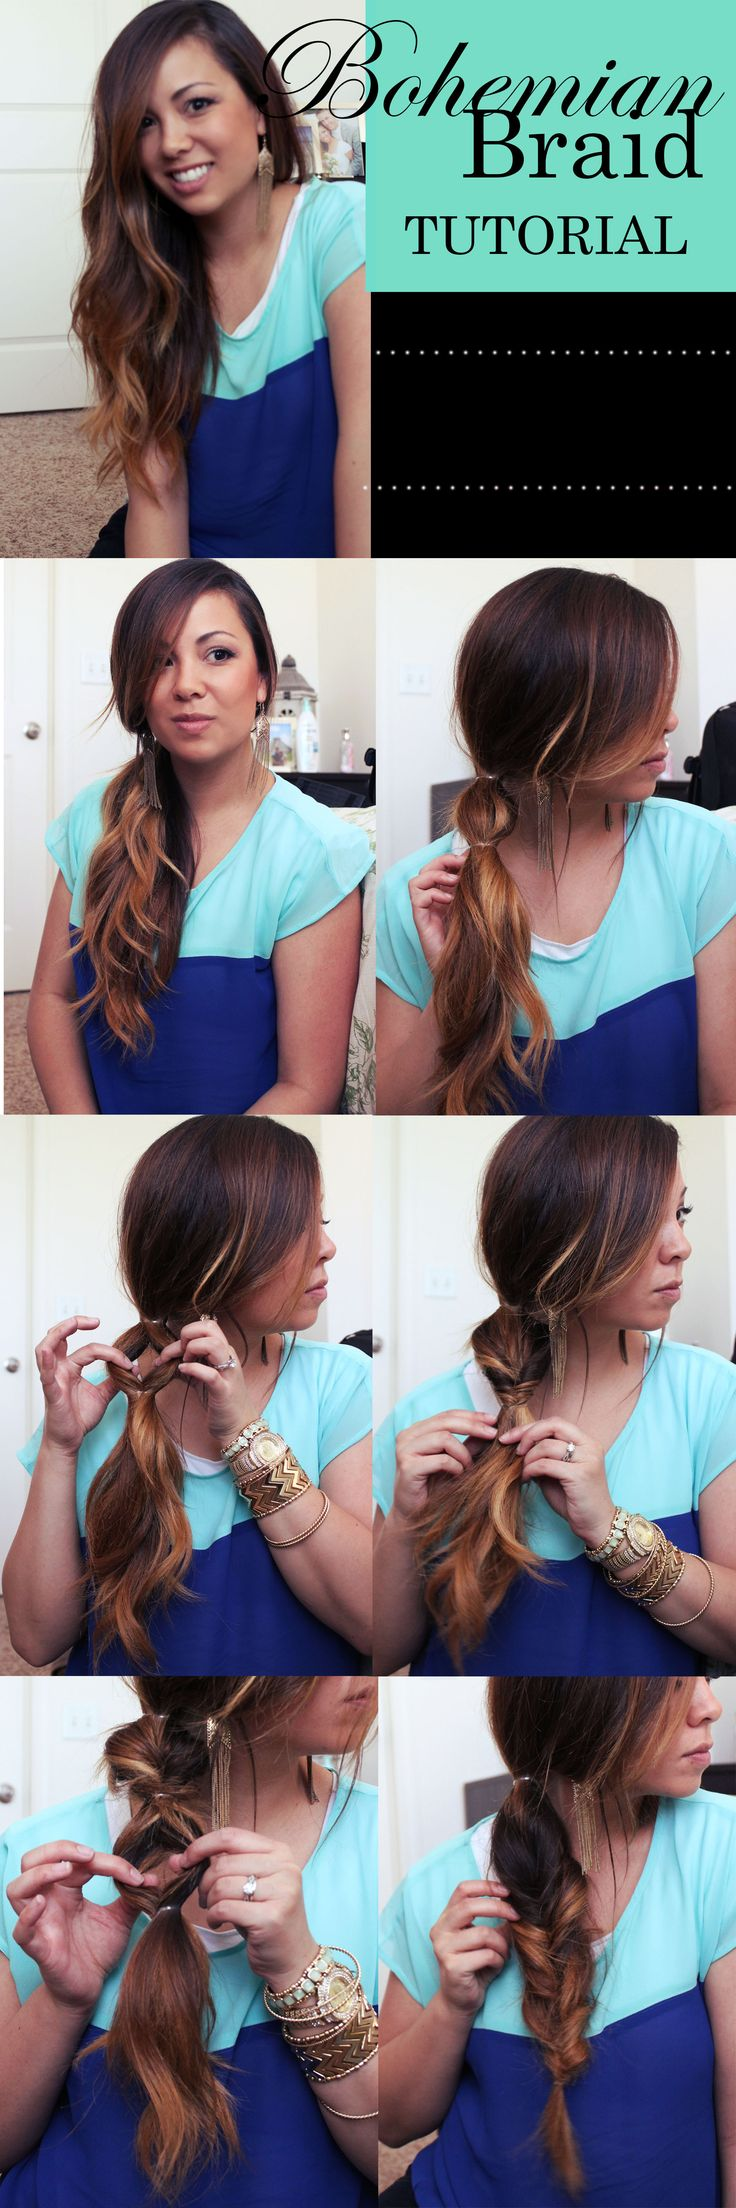 Bohemian braid tutorial. Helpful tips: Fold the bottom part of your hair forward, up and through the hole. Then pull down and through, pull out and tighten. (Something I found that is helpful is I did a small braid in between each twist braid.) Repeat again. After the second twist braid, take out the 2nd clear hair tie, then repeat the process all the way down.